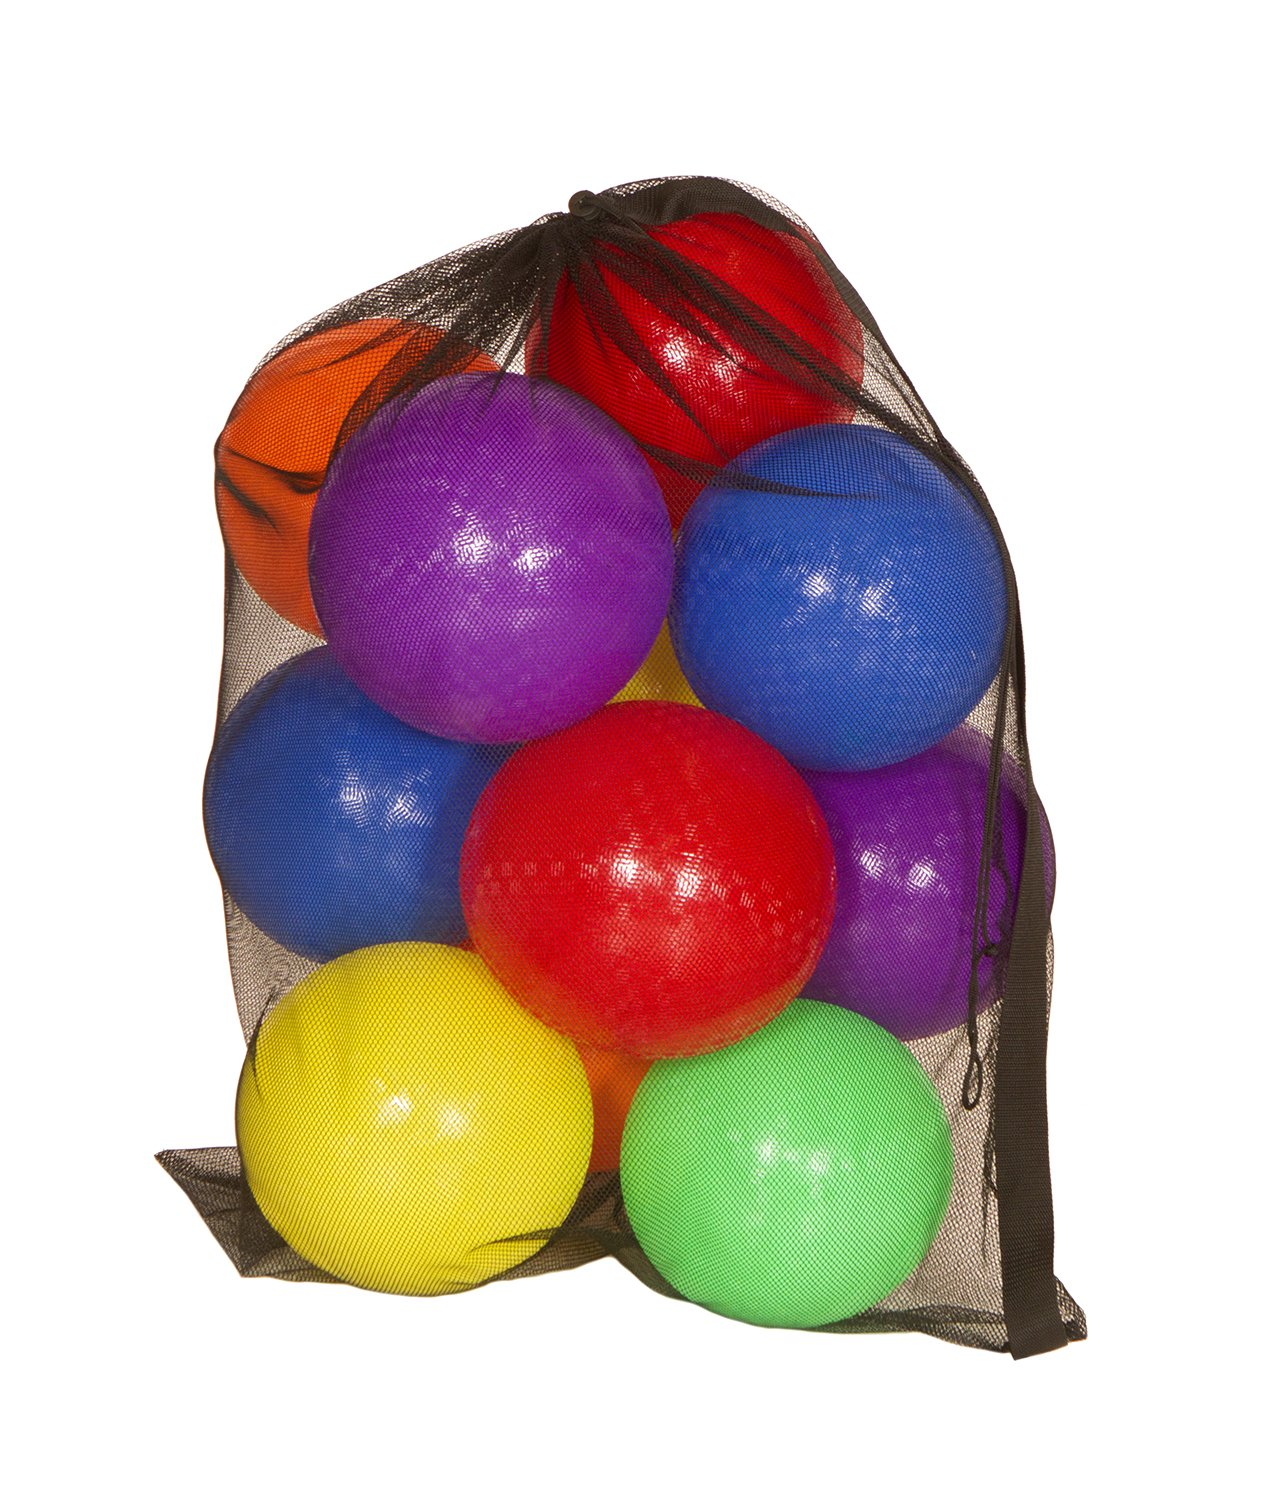 "Get Out! 8.5"" Inch Playground Balls 6-Pack PLUS Mesh Drawstring Carrying Bag & Inflator – Latex-Free Rubber Playground Ball Set by Get Out!"